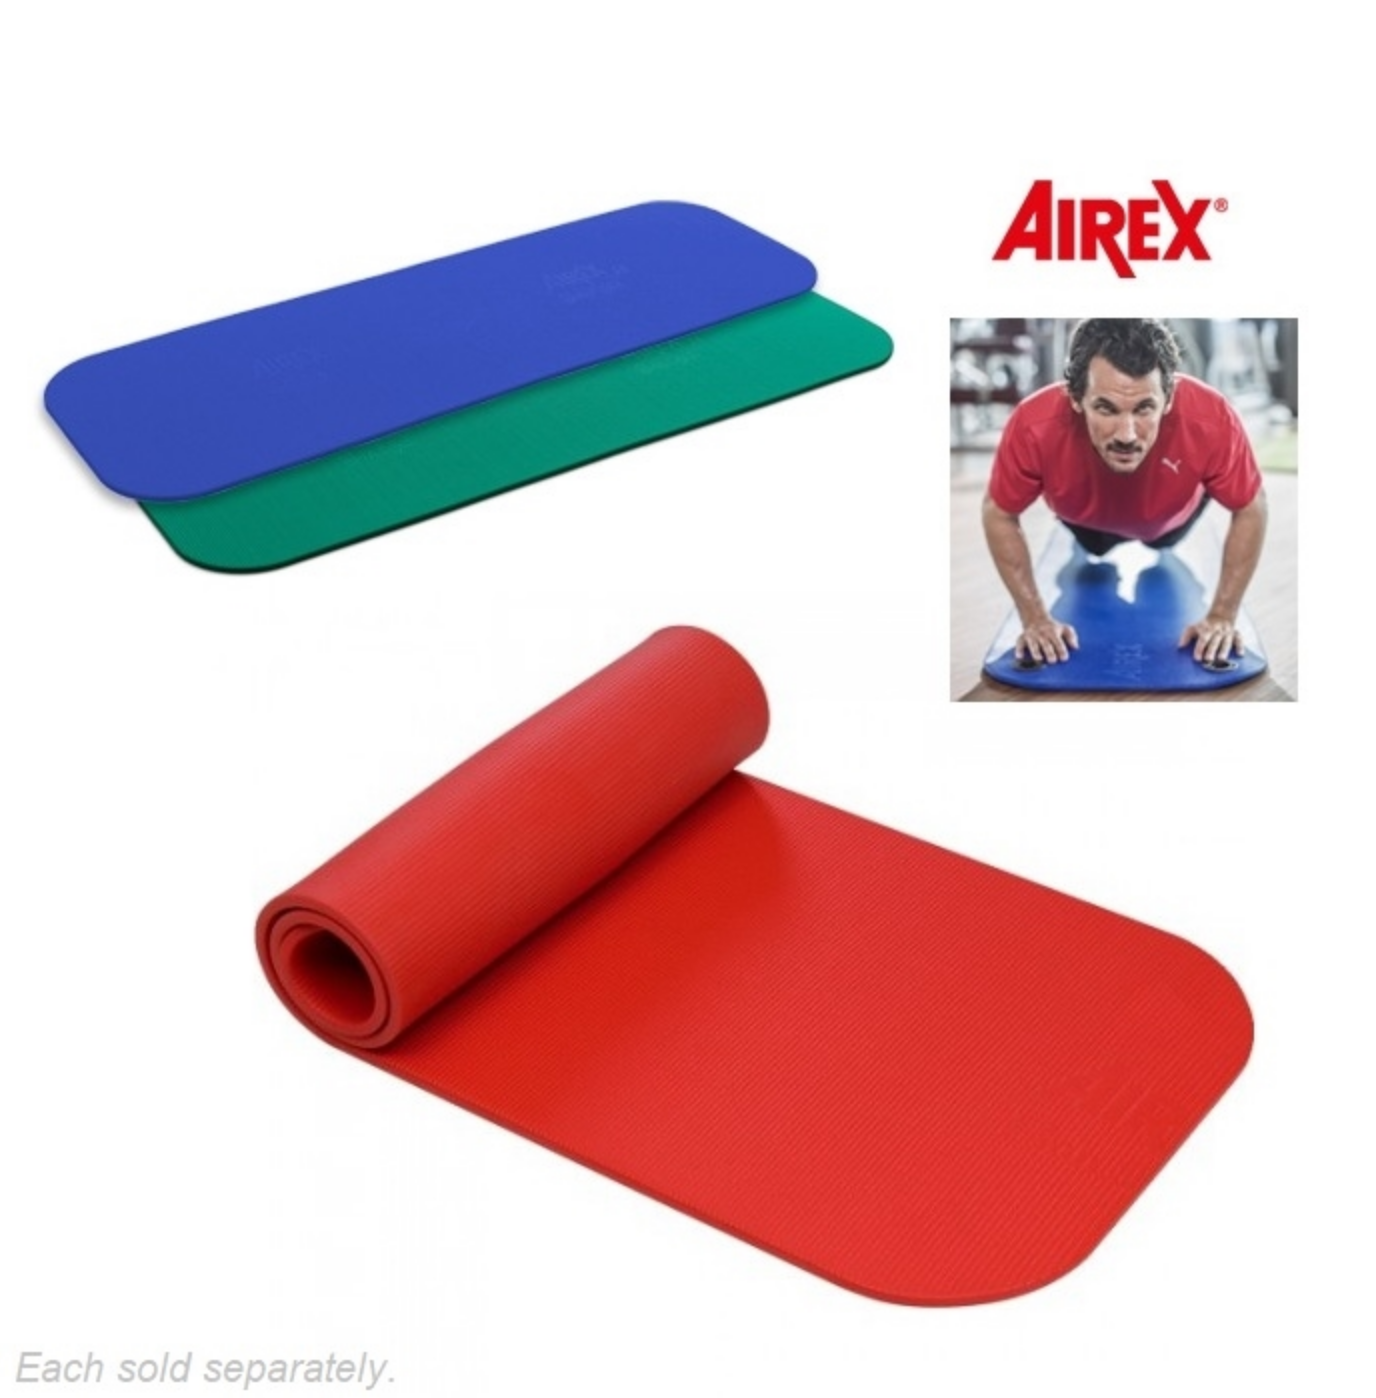 Airex Coronella Professional Quality Exercise Mat 72 L X 23 W X 6 H Ebay